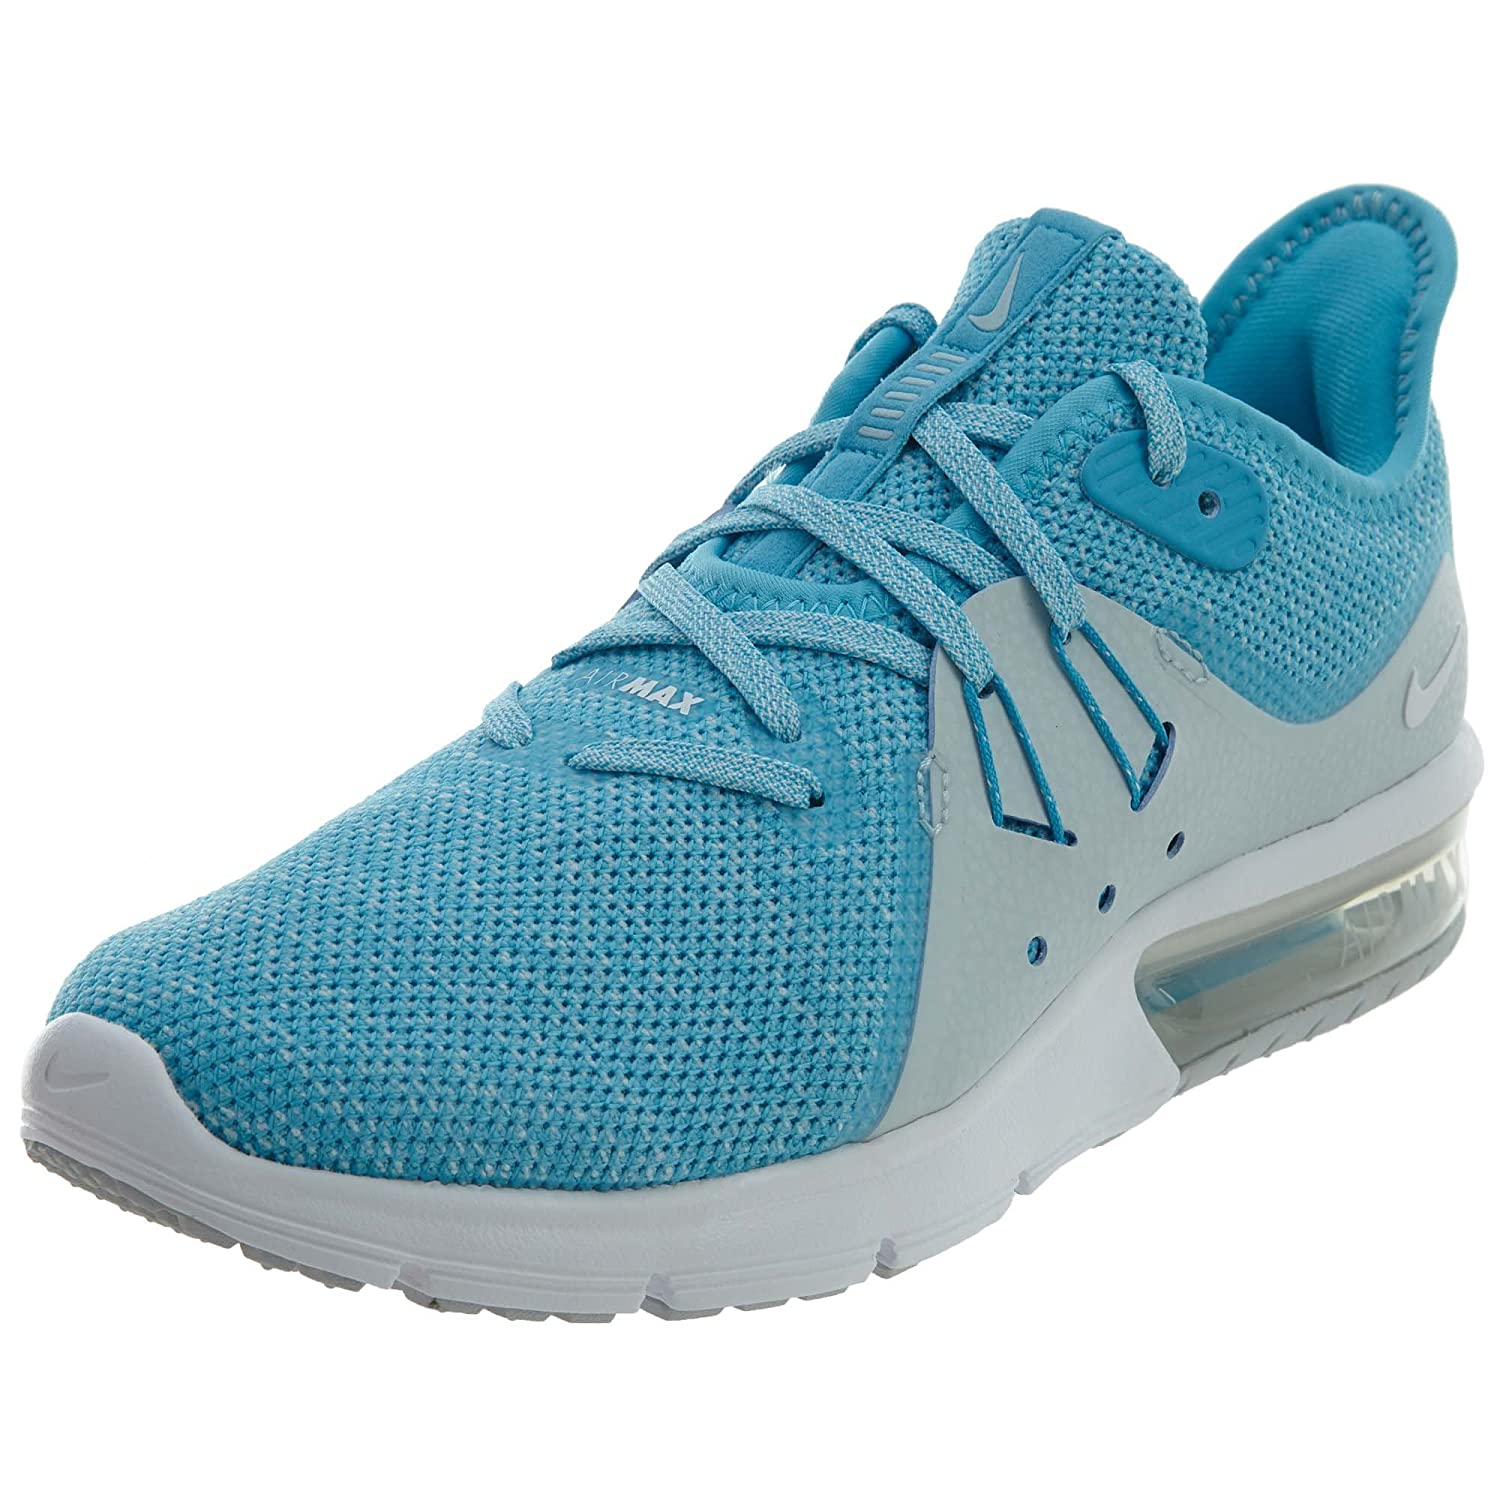 nike air max sequent 3 women's running shoe